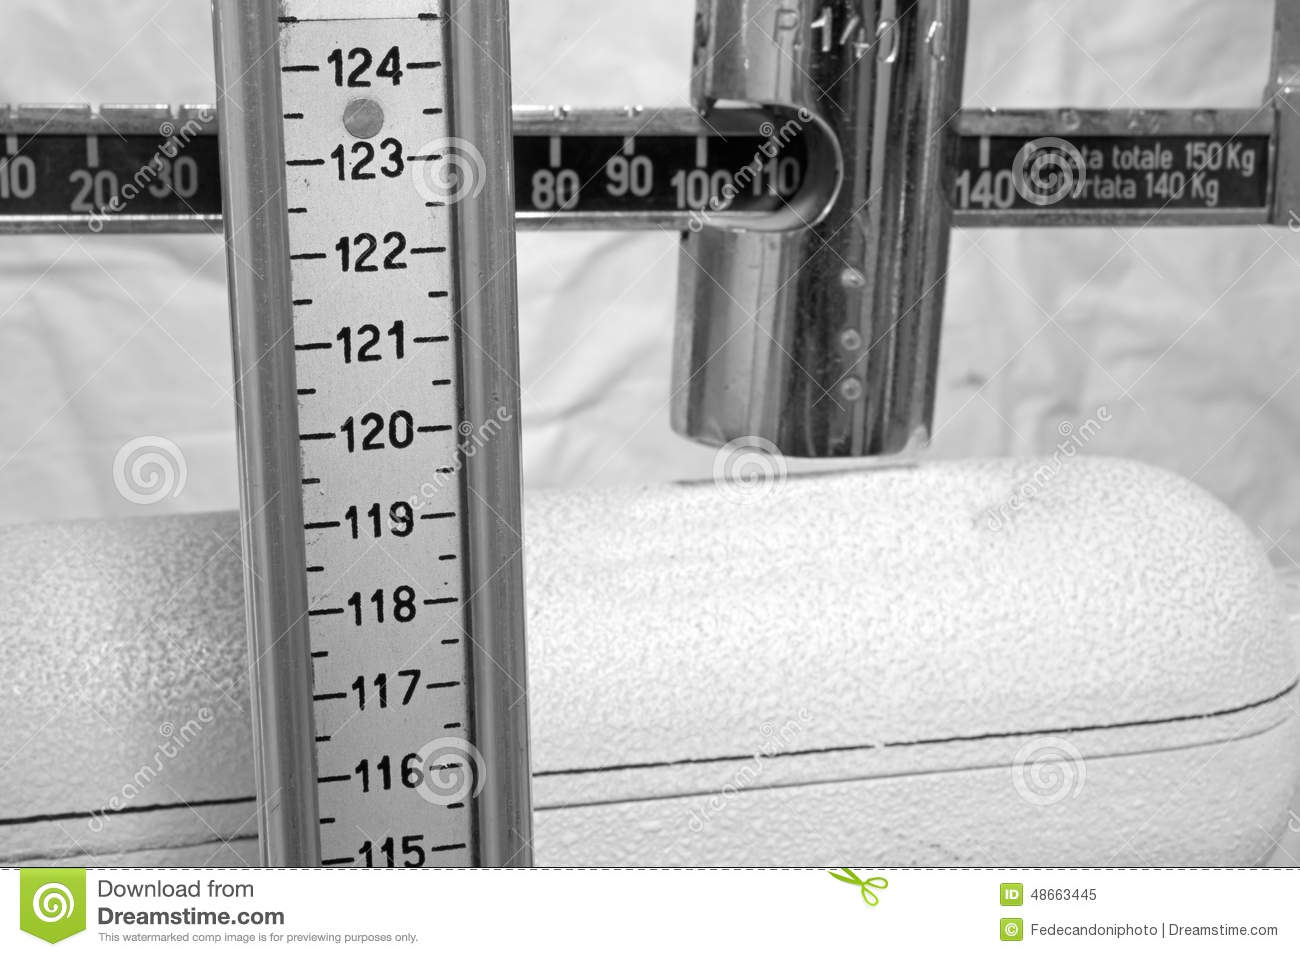 how to read a weight and height scale